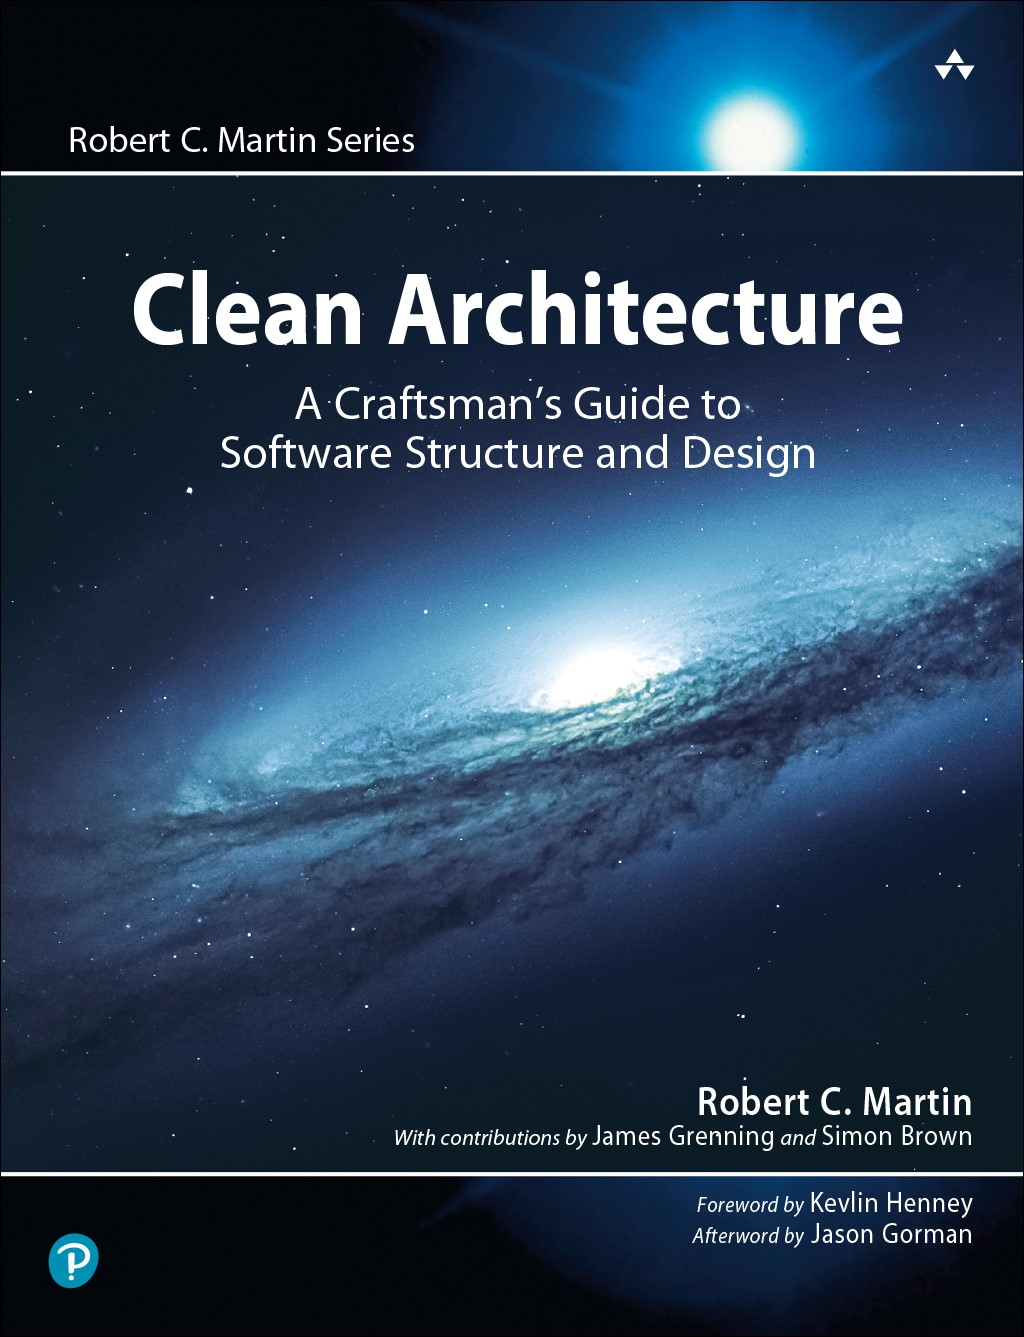 Clean Archictecture